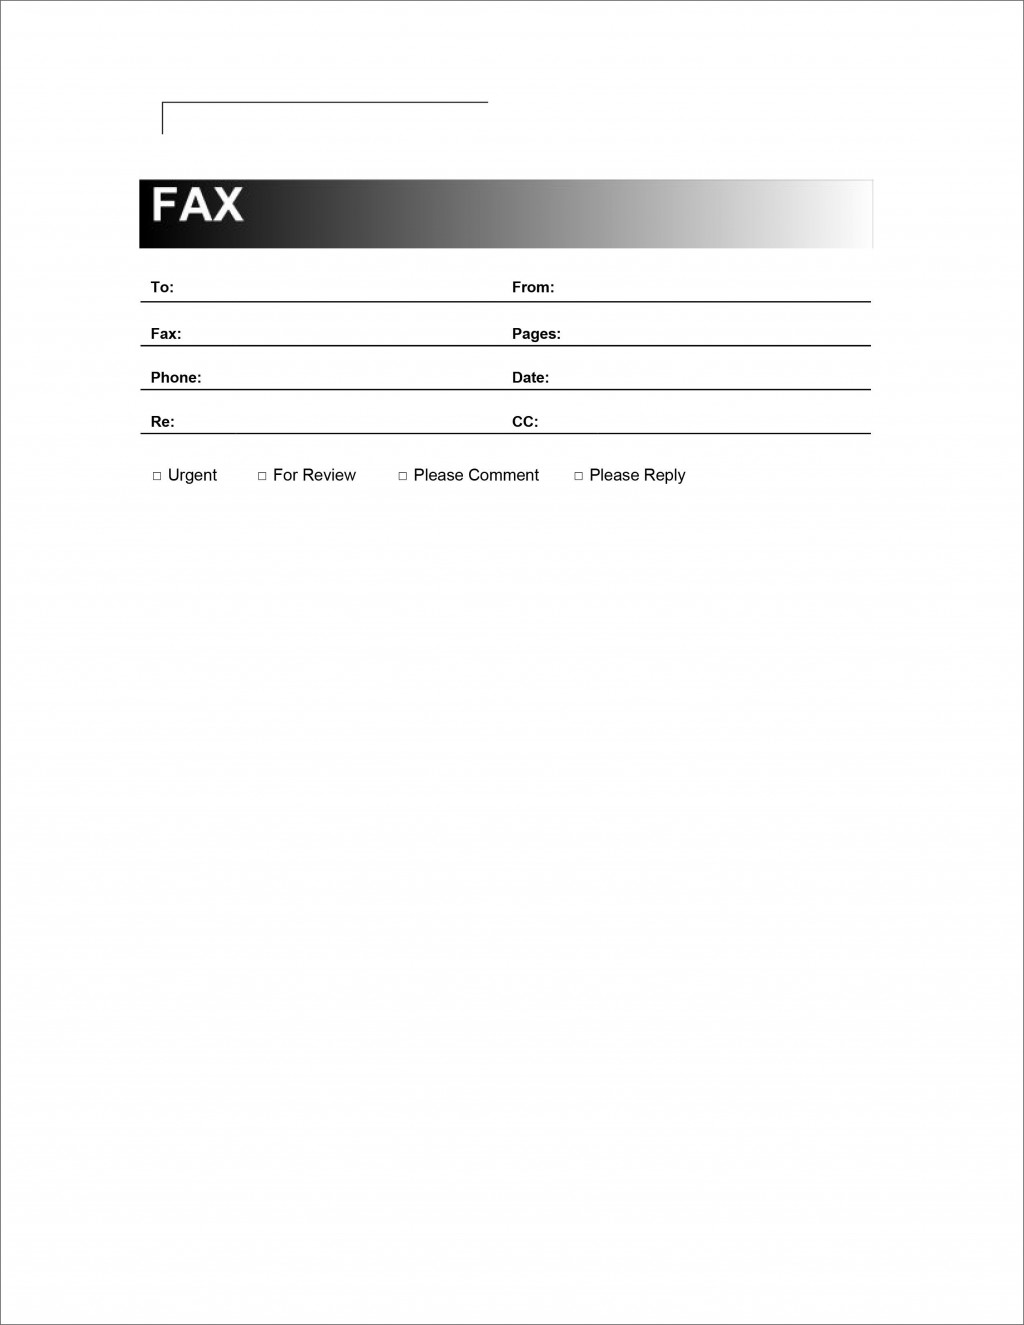 004 Sensational Fax Template Microsoft Word Picture  Cover Sheet 2010 Letter BusinesLarge